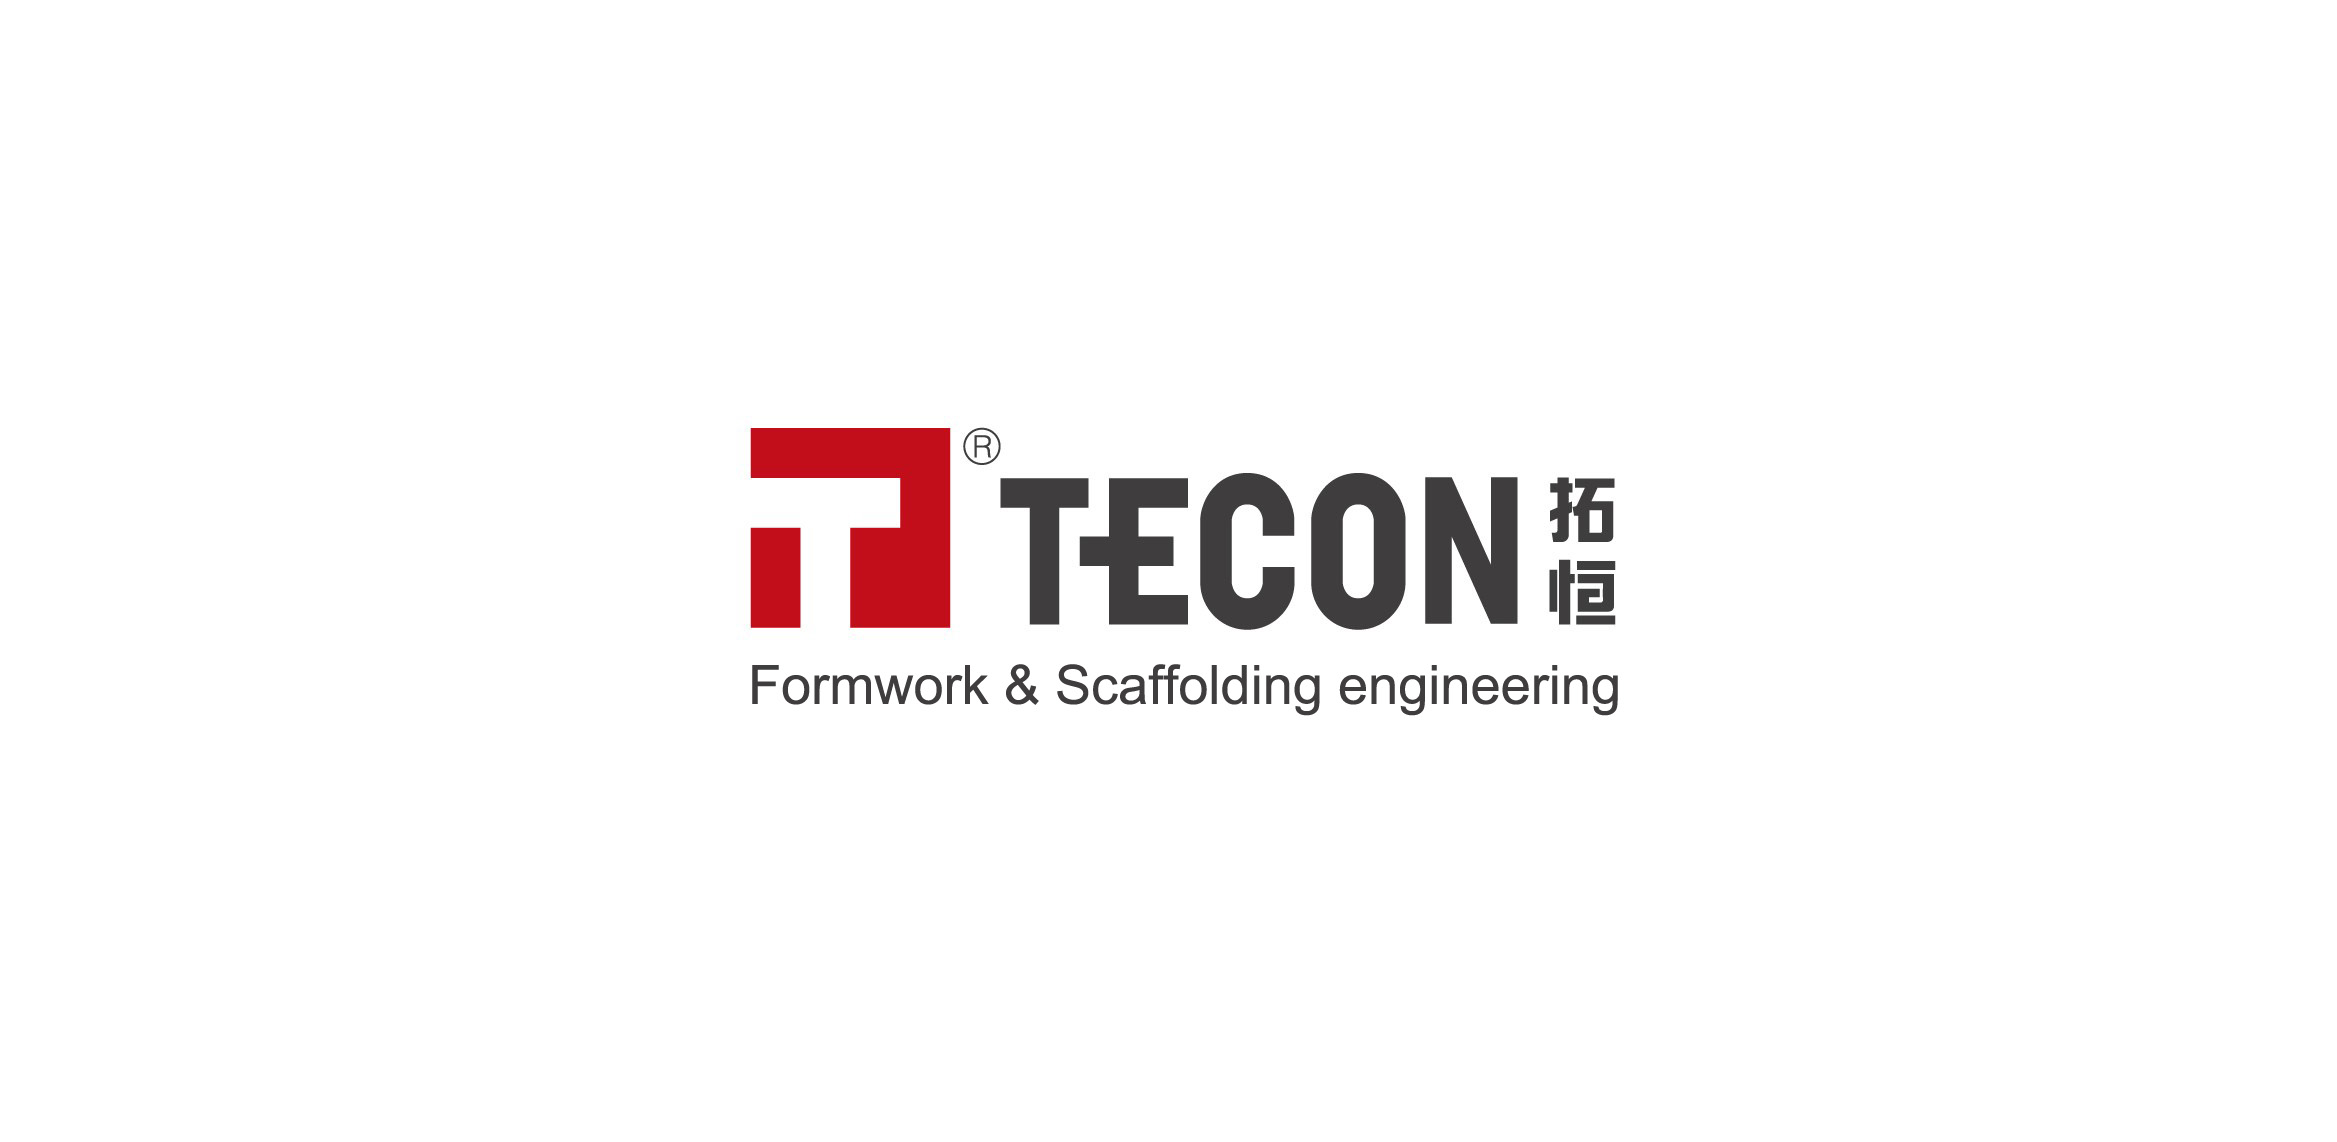 Suzhou TECON Construction Technology Co., Ltd